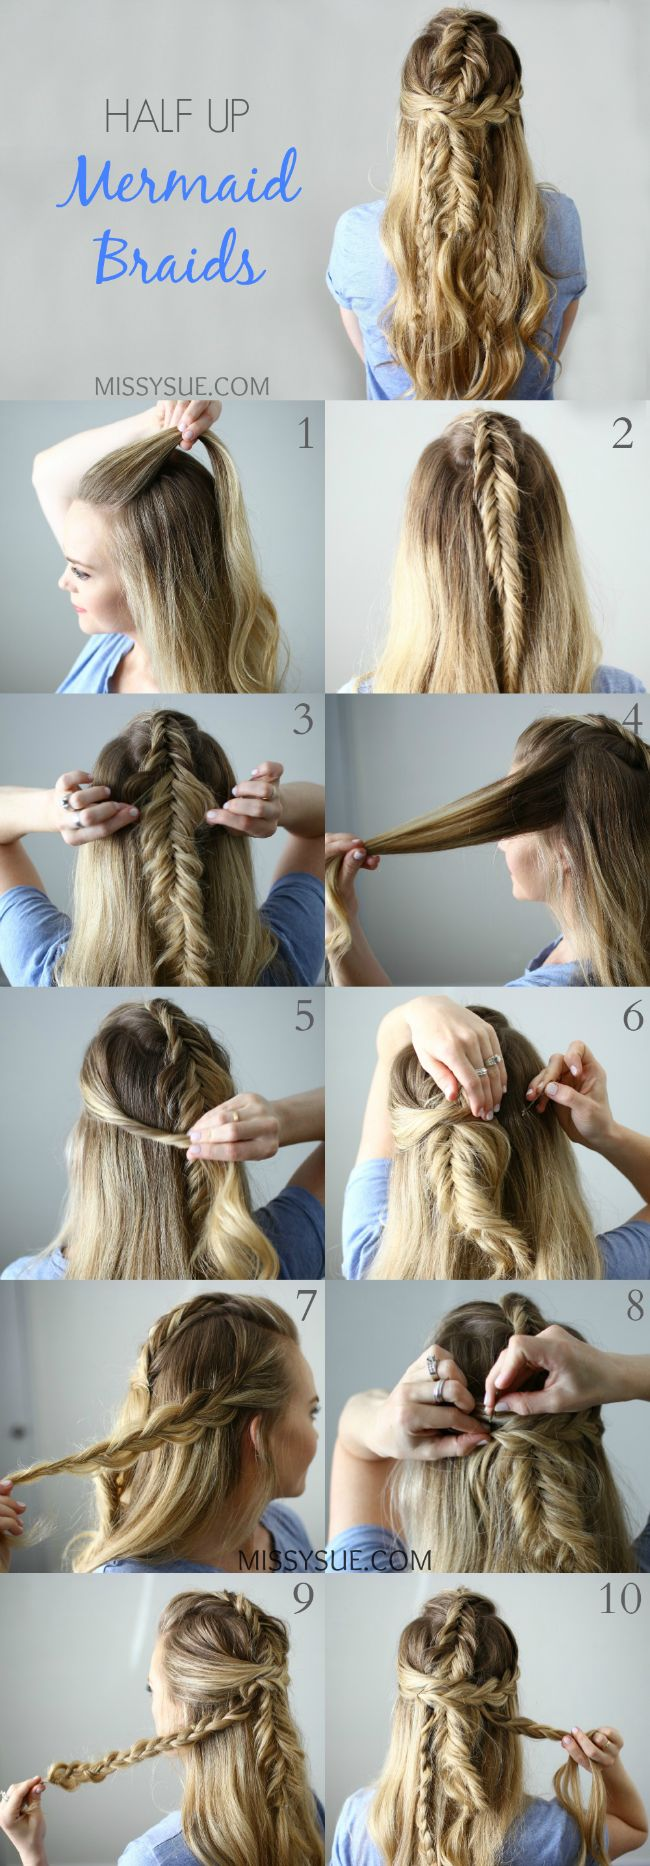 Hairstyle Tutorials Classy 389 Best Hair Romance Tutorials Images On Pinterest  Easy Hairstyle